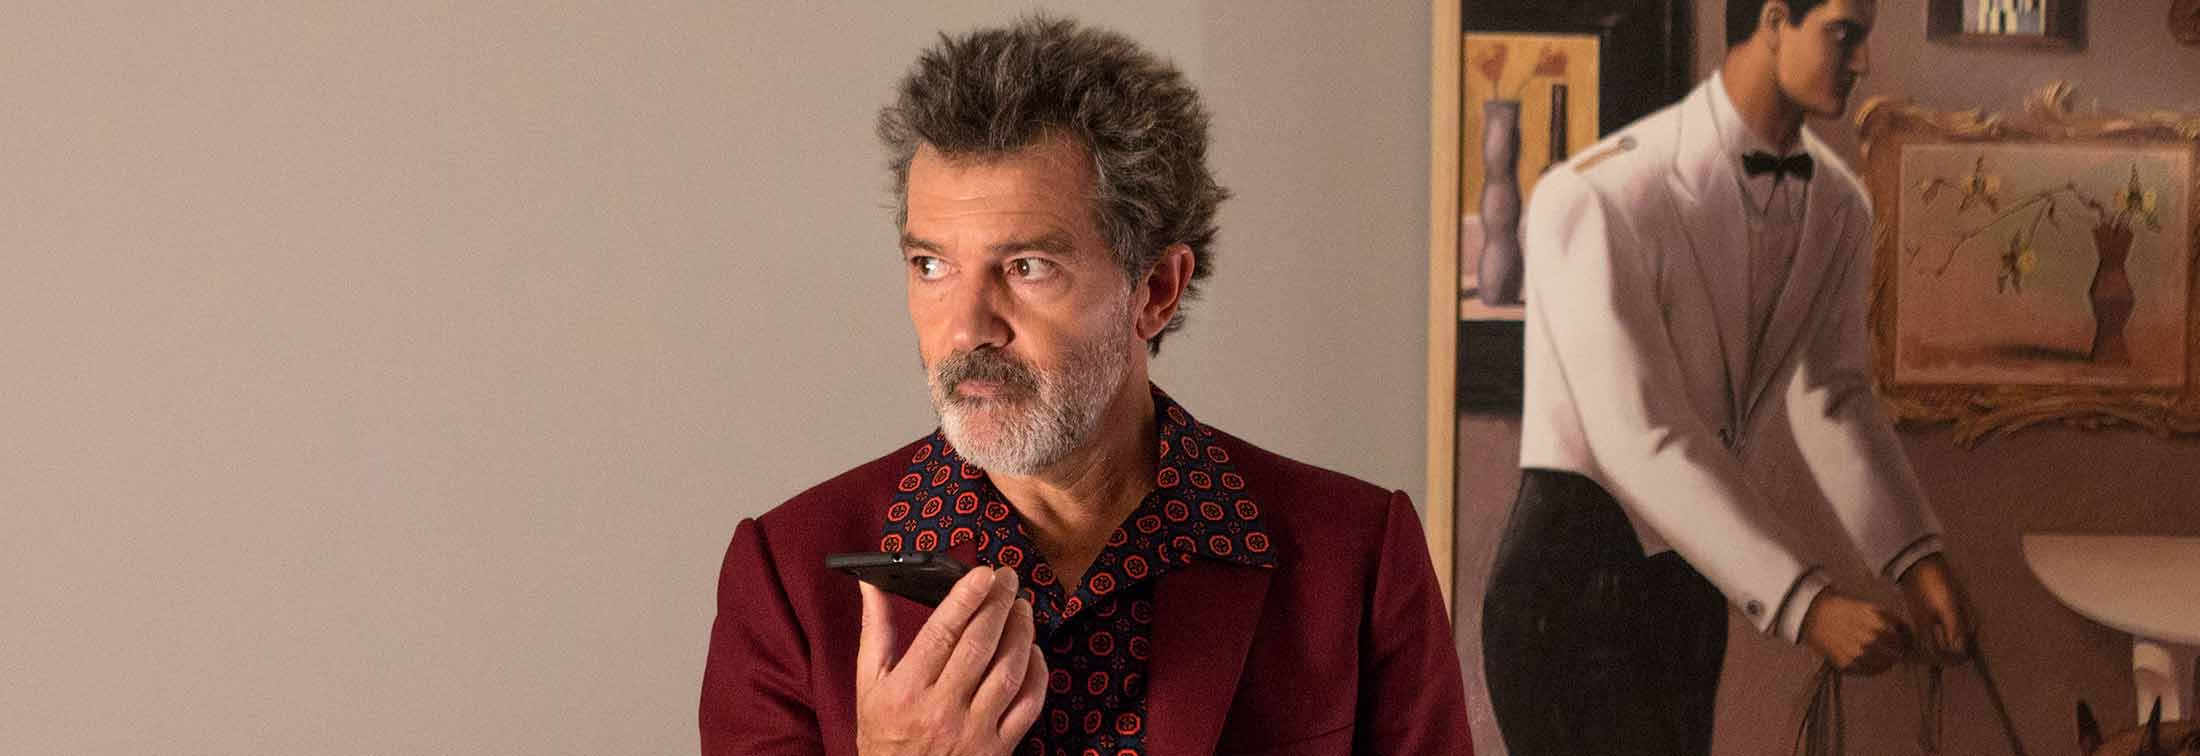 Pain and Glory - Almodóvar delivers a rhapsodic masterwork